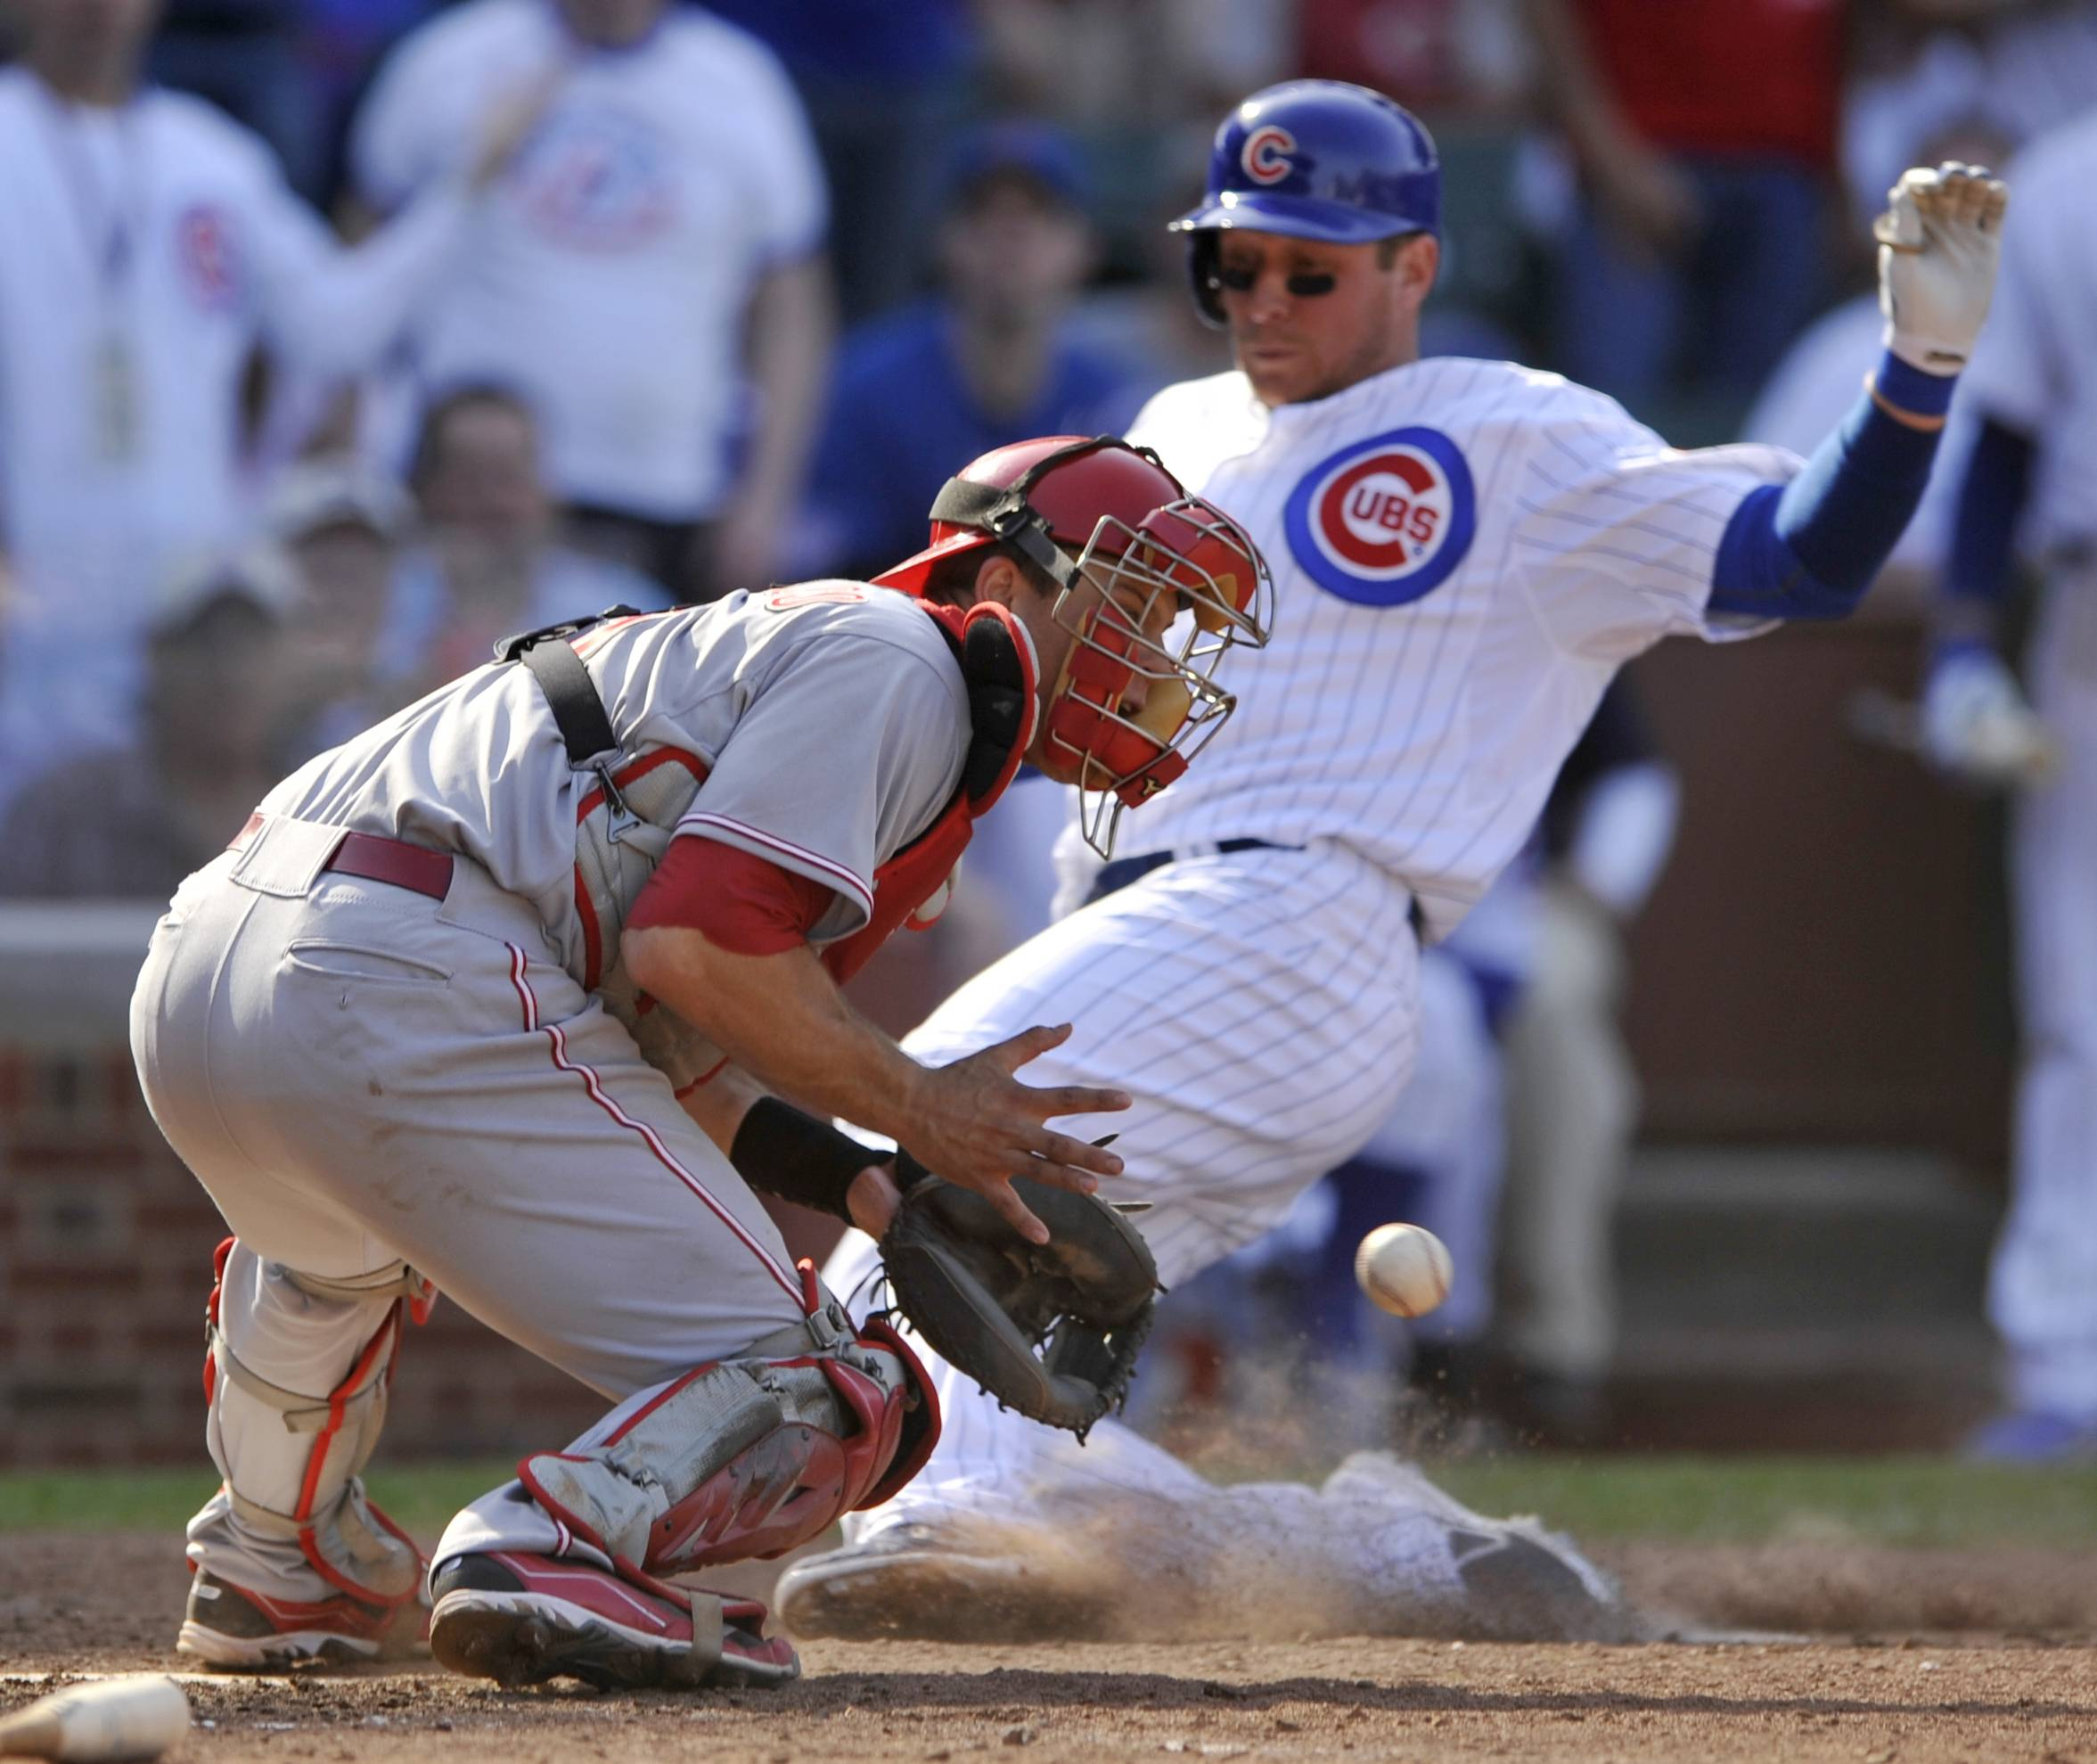 Cincinnati Reds catcher Devin Mesoraco front, catches the throw while Chicago Cubs' Ryan Sweeney slides safely into home plate on a single hit by Nate Schierholtz during the seventh inning of a baseball game in Chicago, Sunday, April 20, 2014.